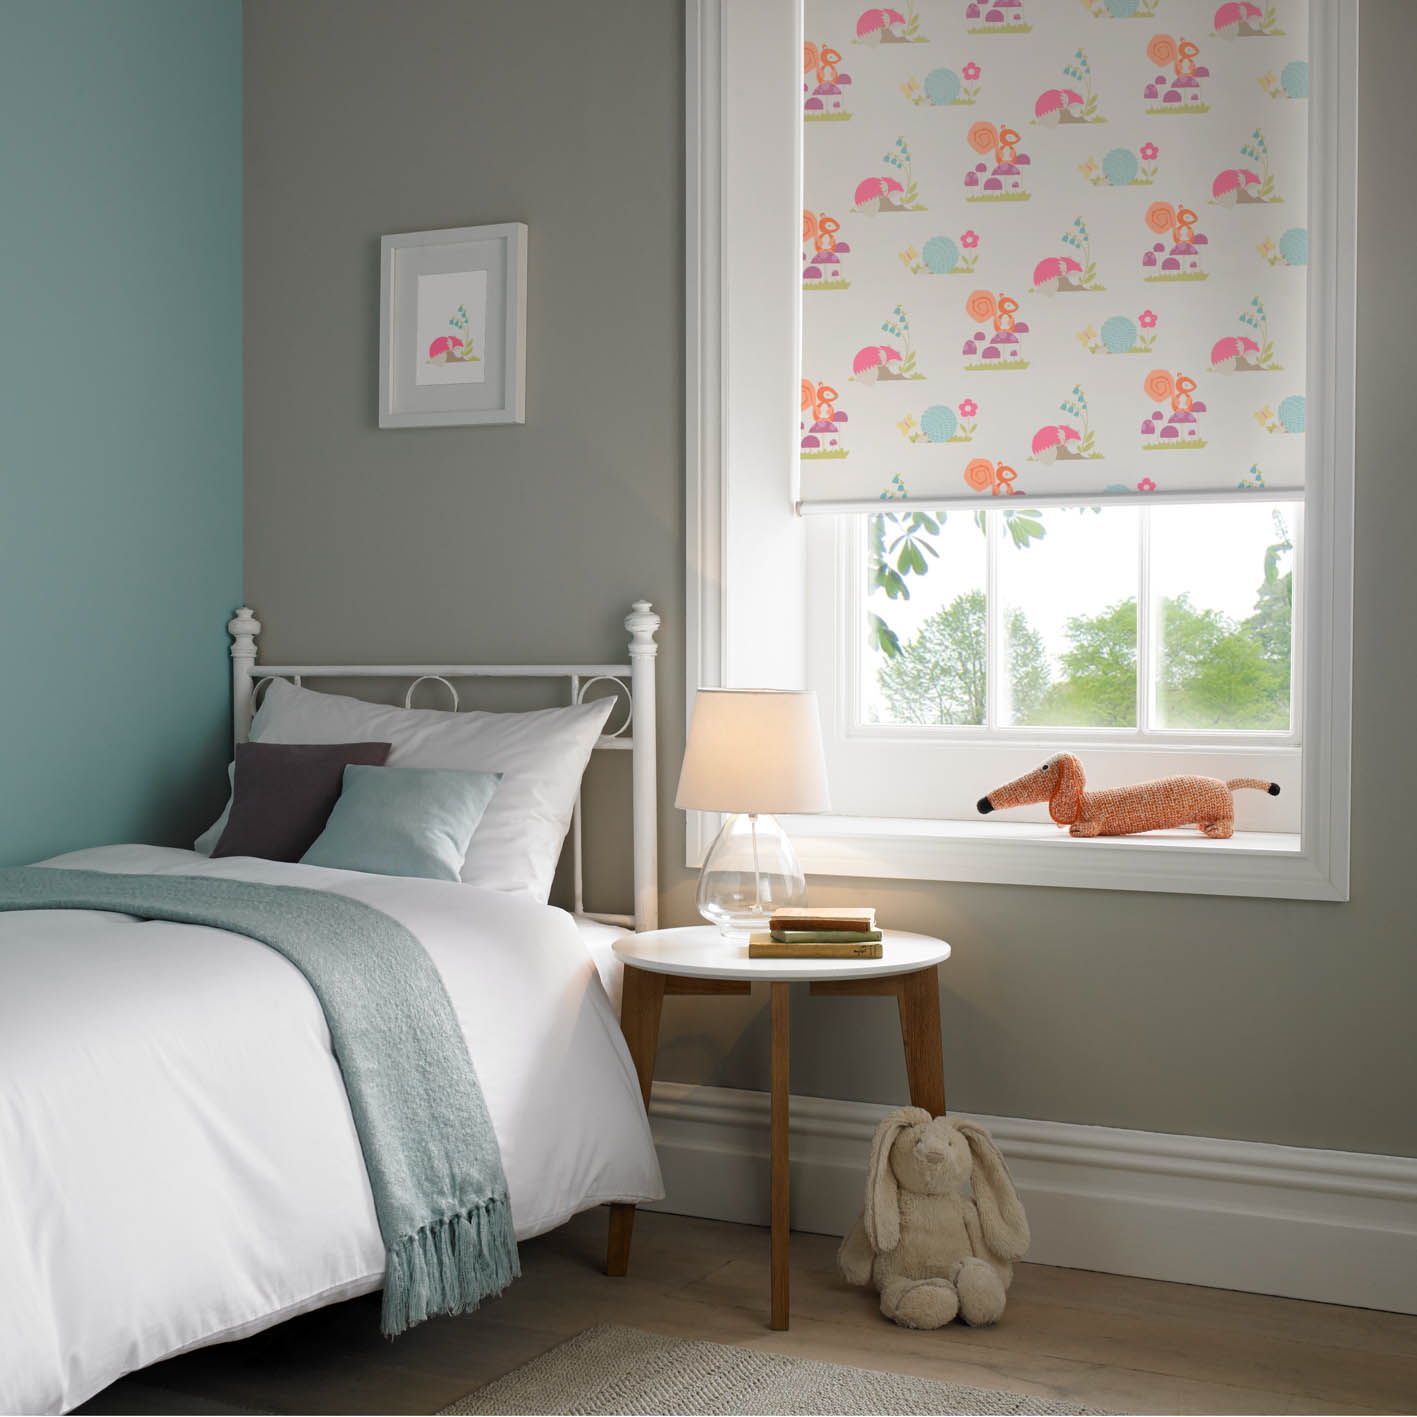 Roller window blinds with ultra one touch control appeal for Blinds for kids rooms